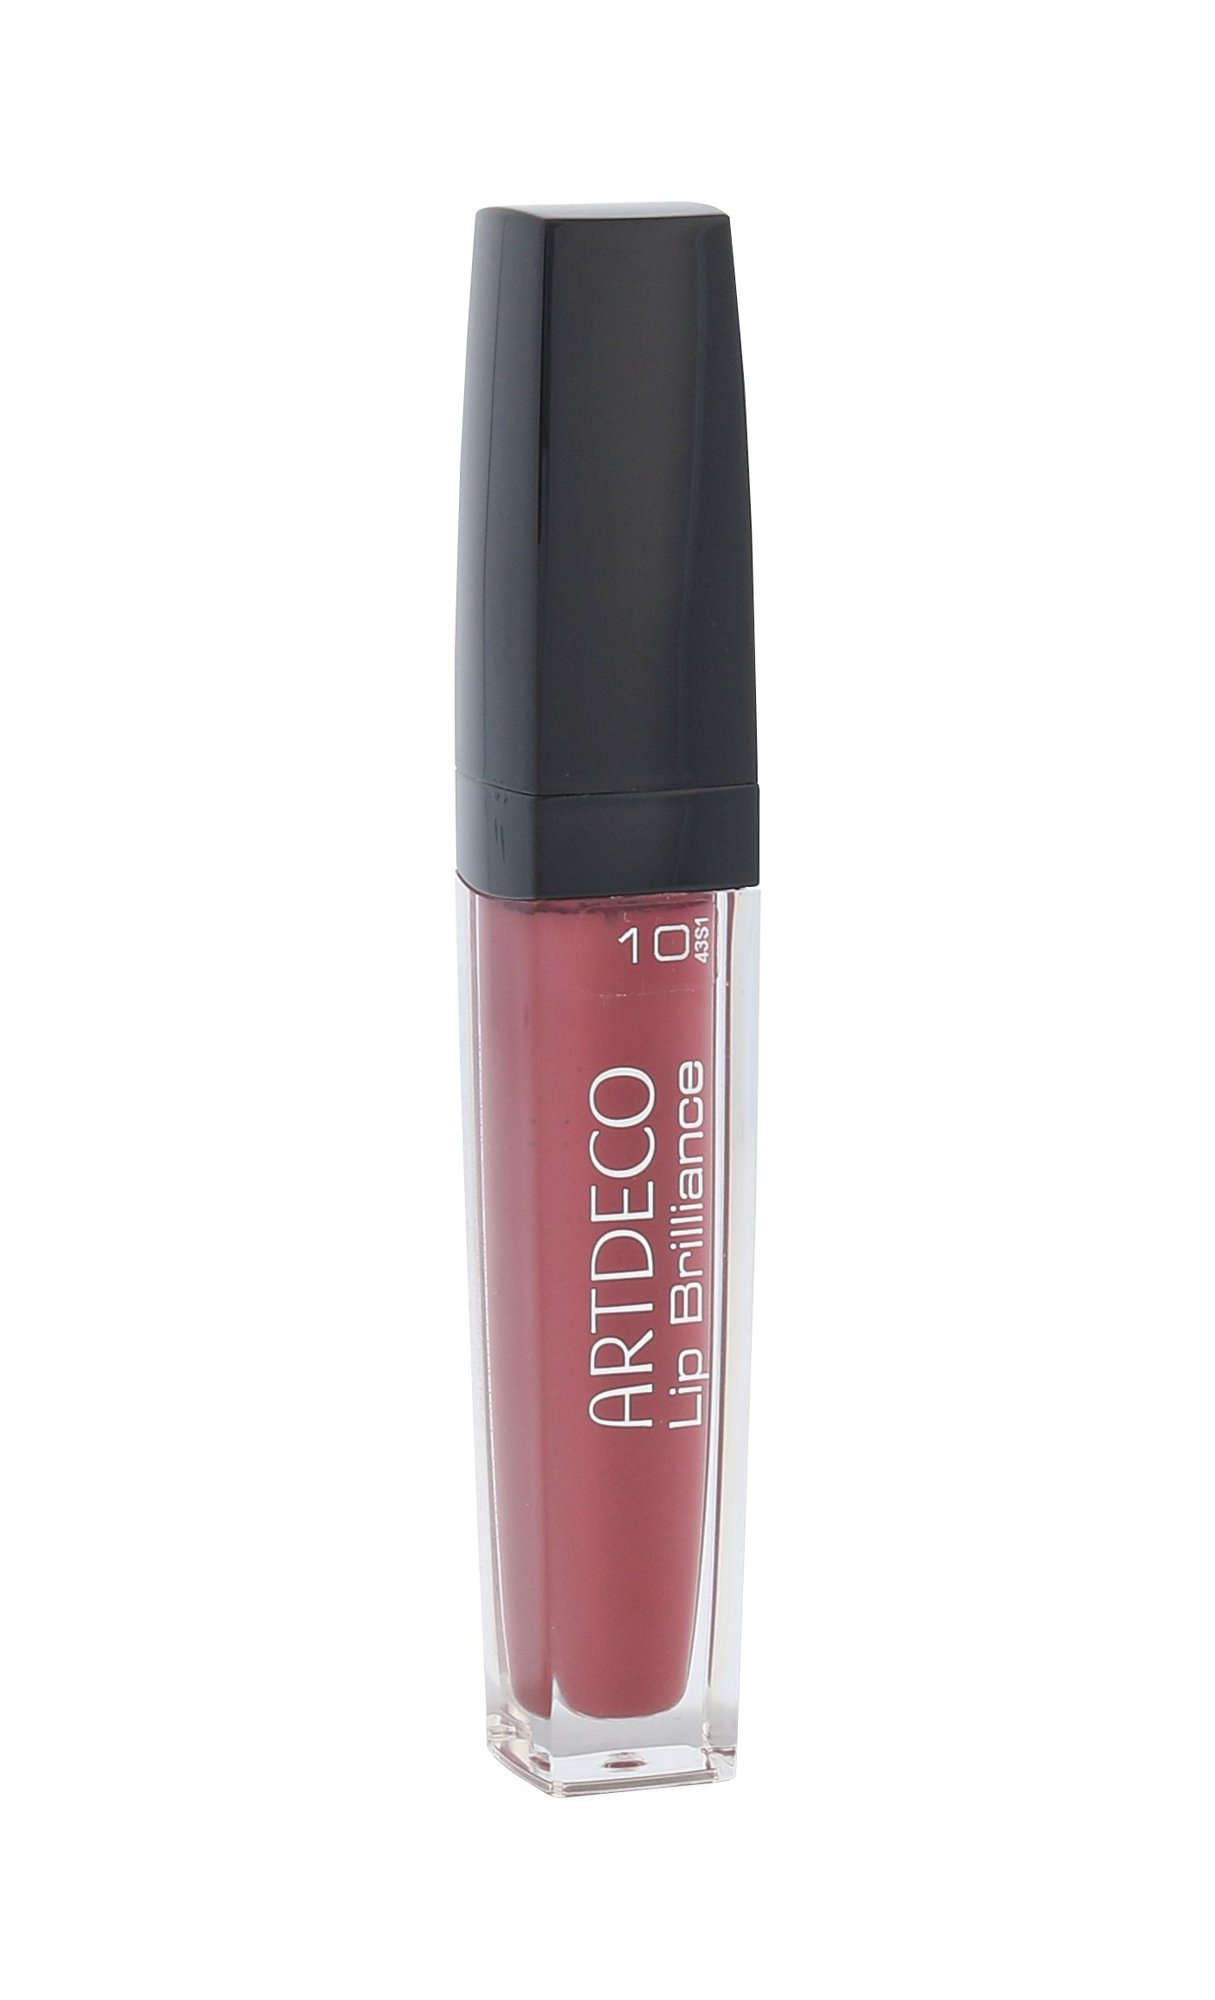 Artdeco Lip Brilliance Cosmetic 5ml 10 Brilliant Carmine